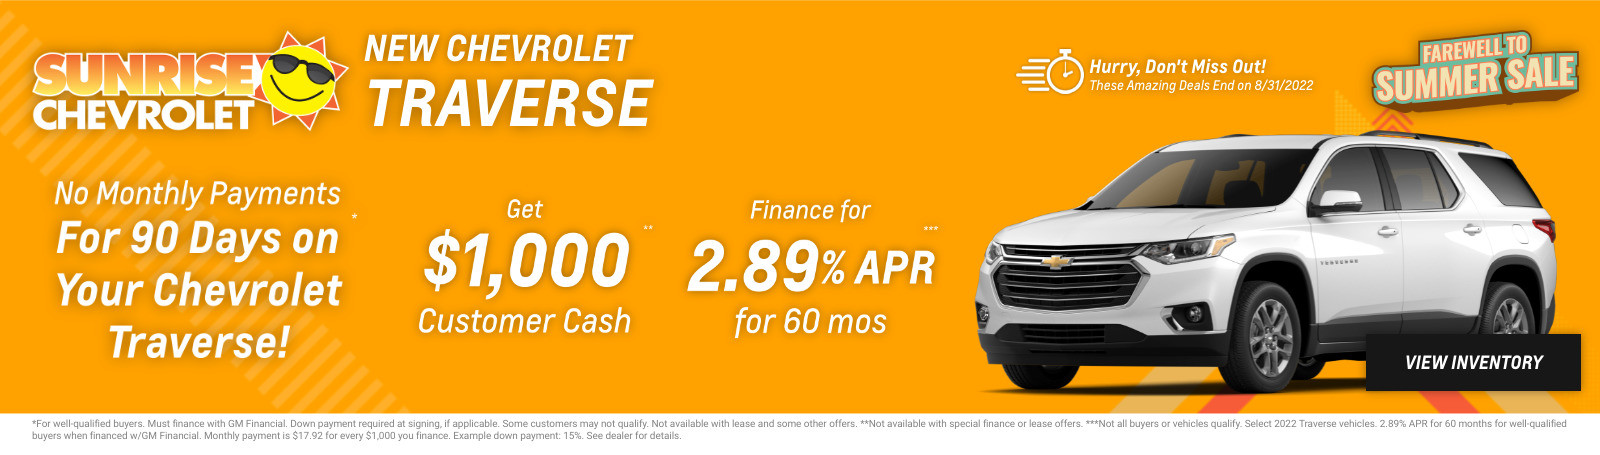 New Chevrolet Traverse Current Deals and Offers in Chicago, IL